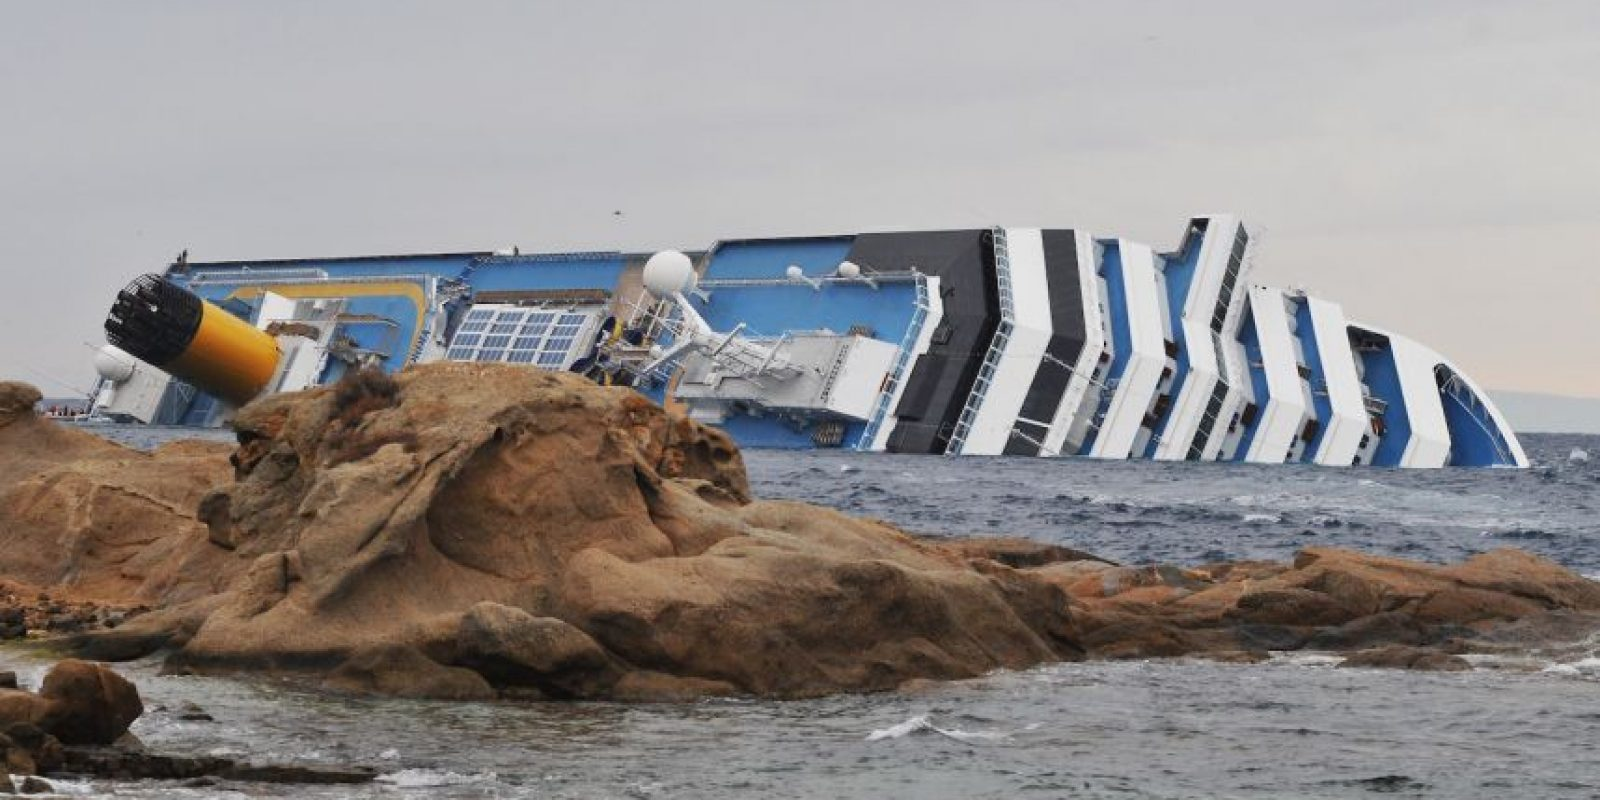 En este accidente murieron al menos 30 personas. Foto: Getty Images